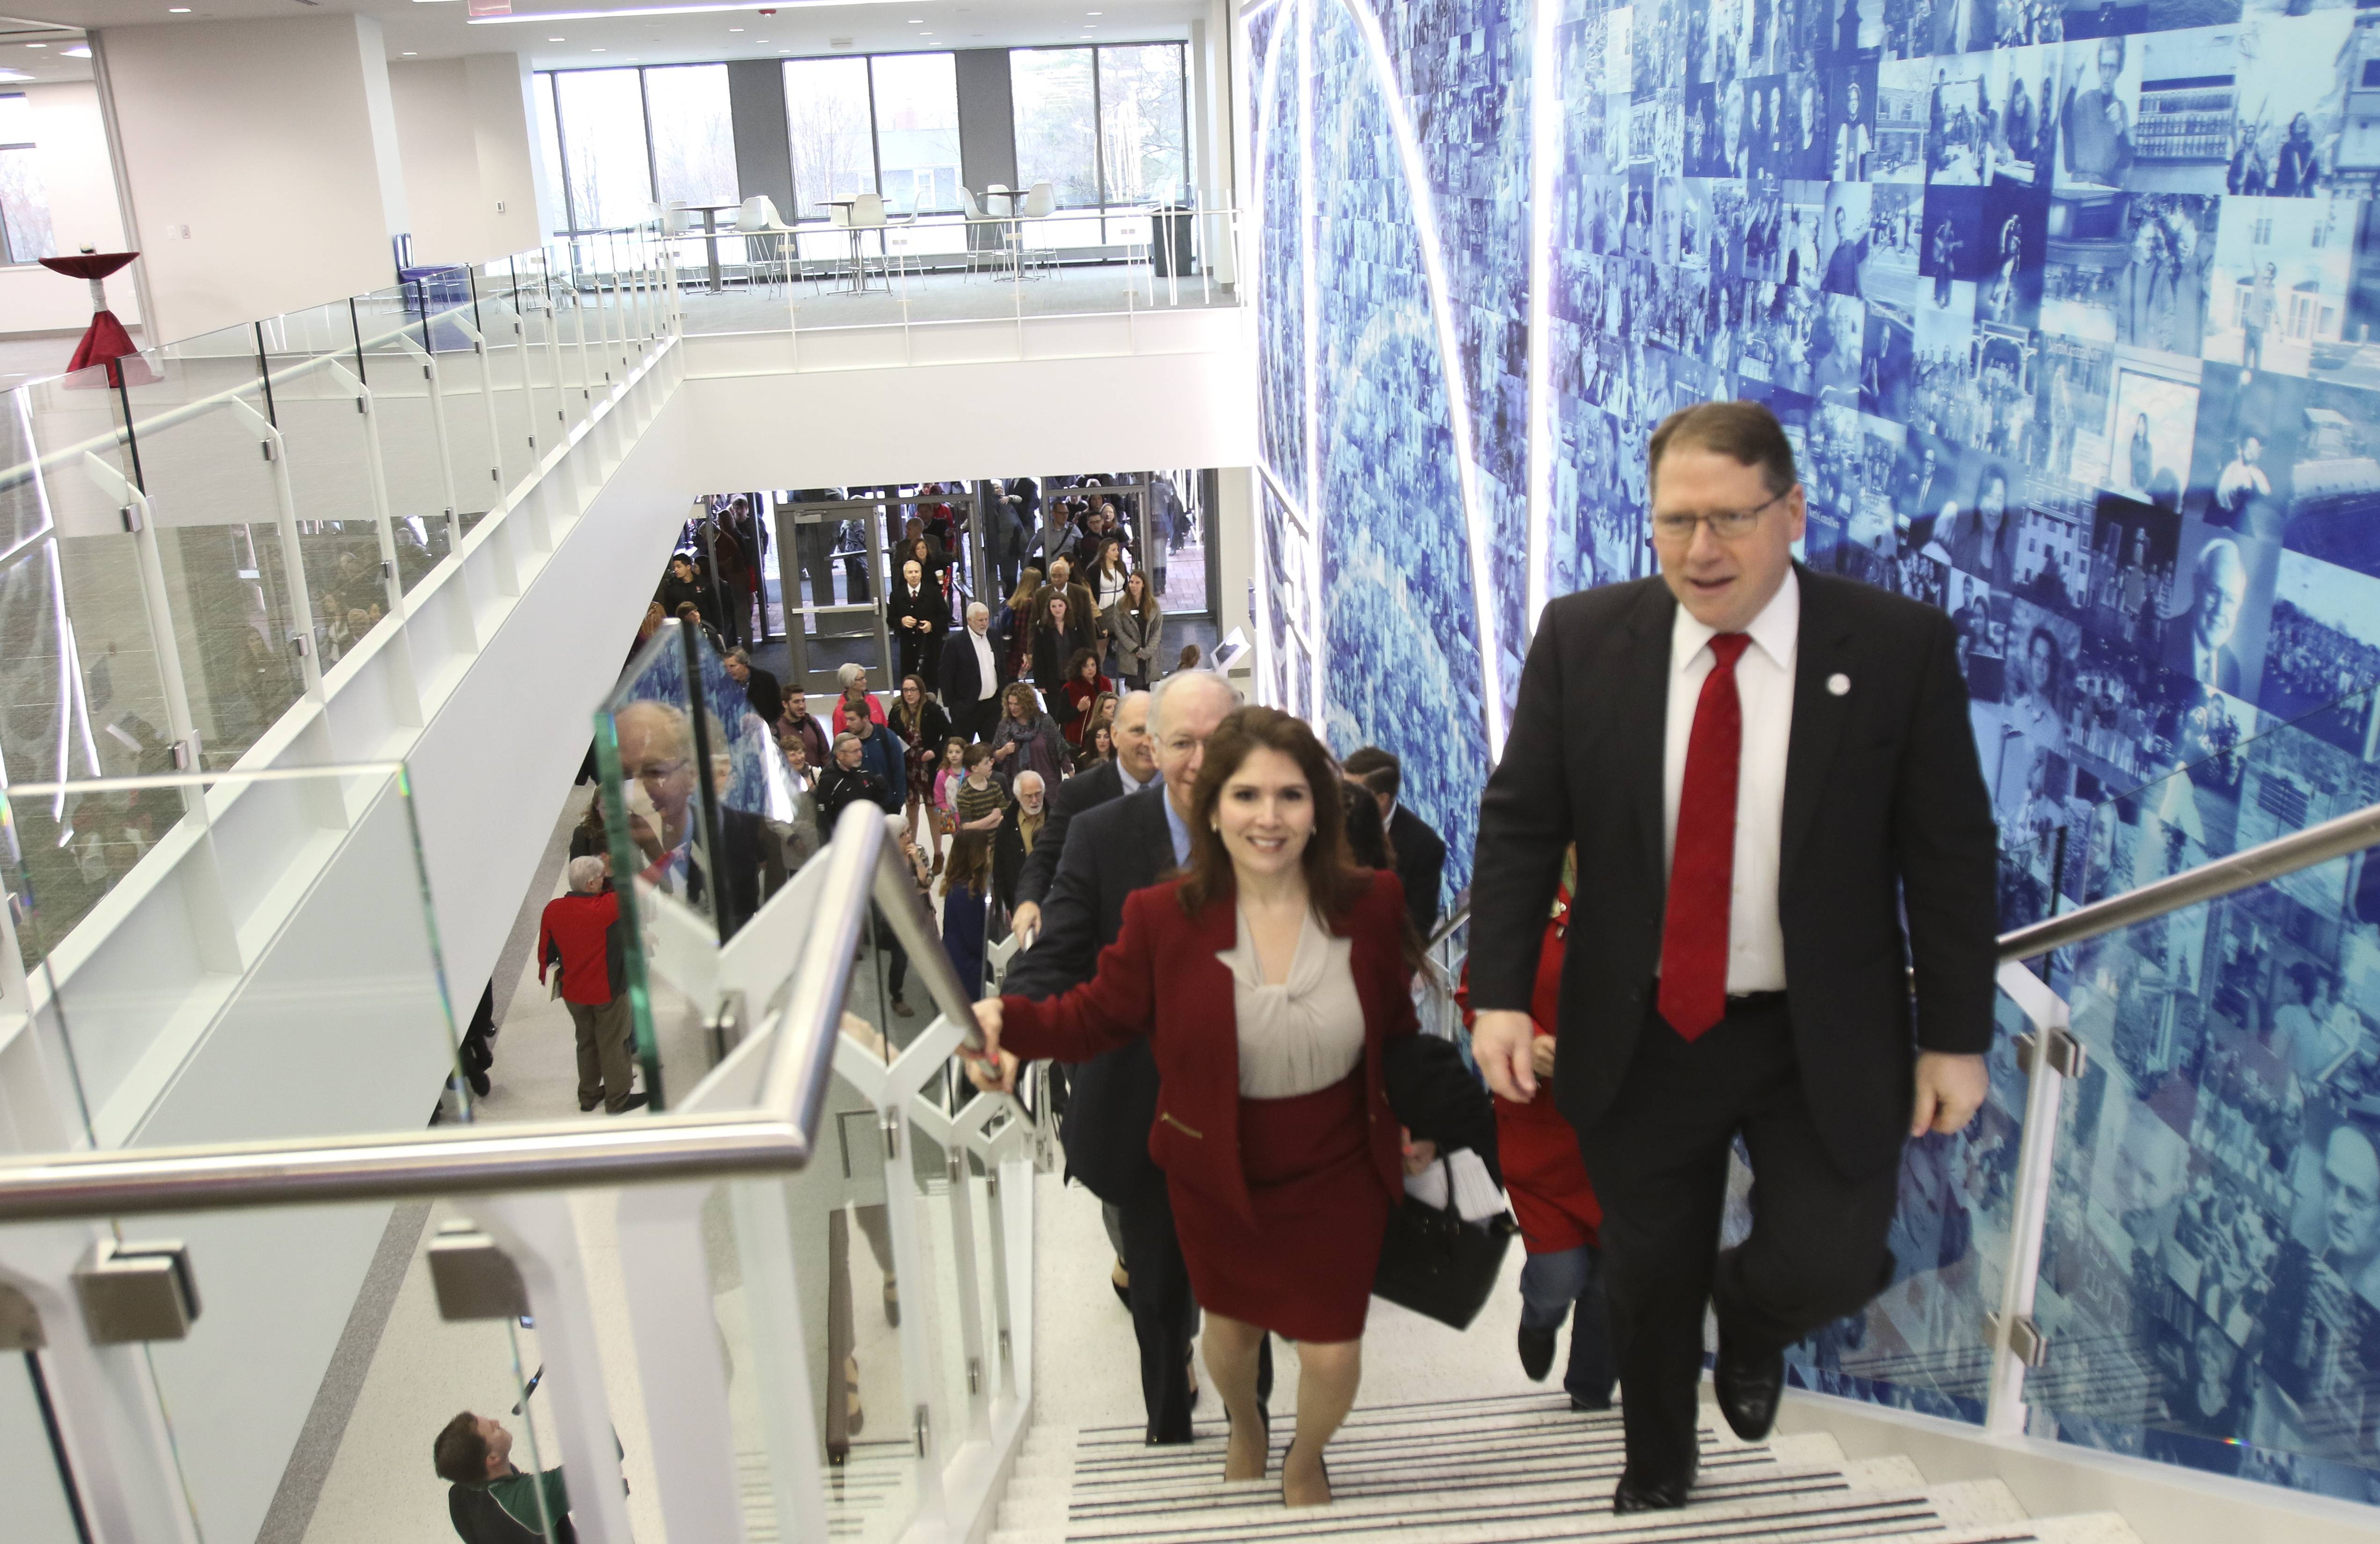 North Central College President Troy Hammond leads visitors, including Lt. Gov. Evelyn Saguinetti, left, into the school's new Science Center on Monday in Naperville.